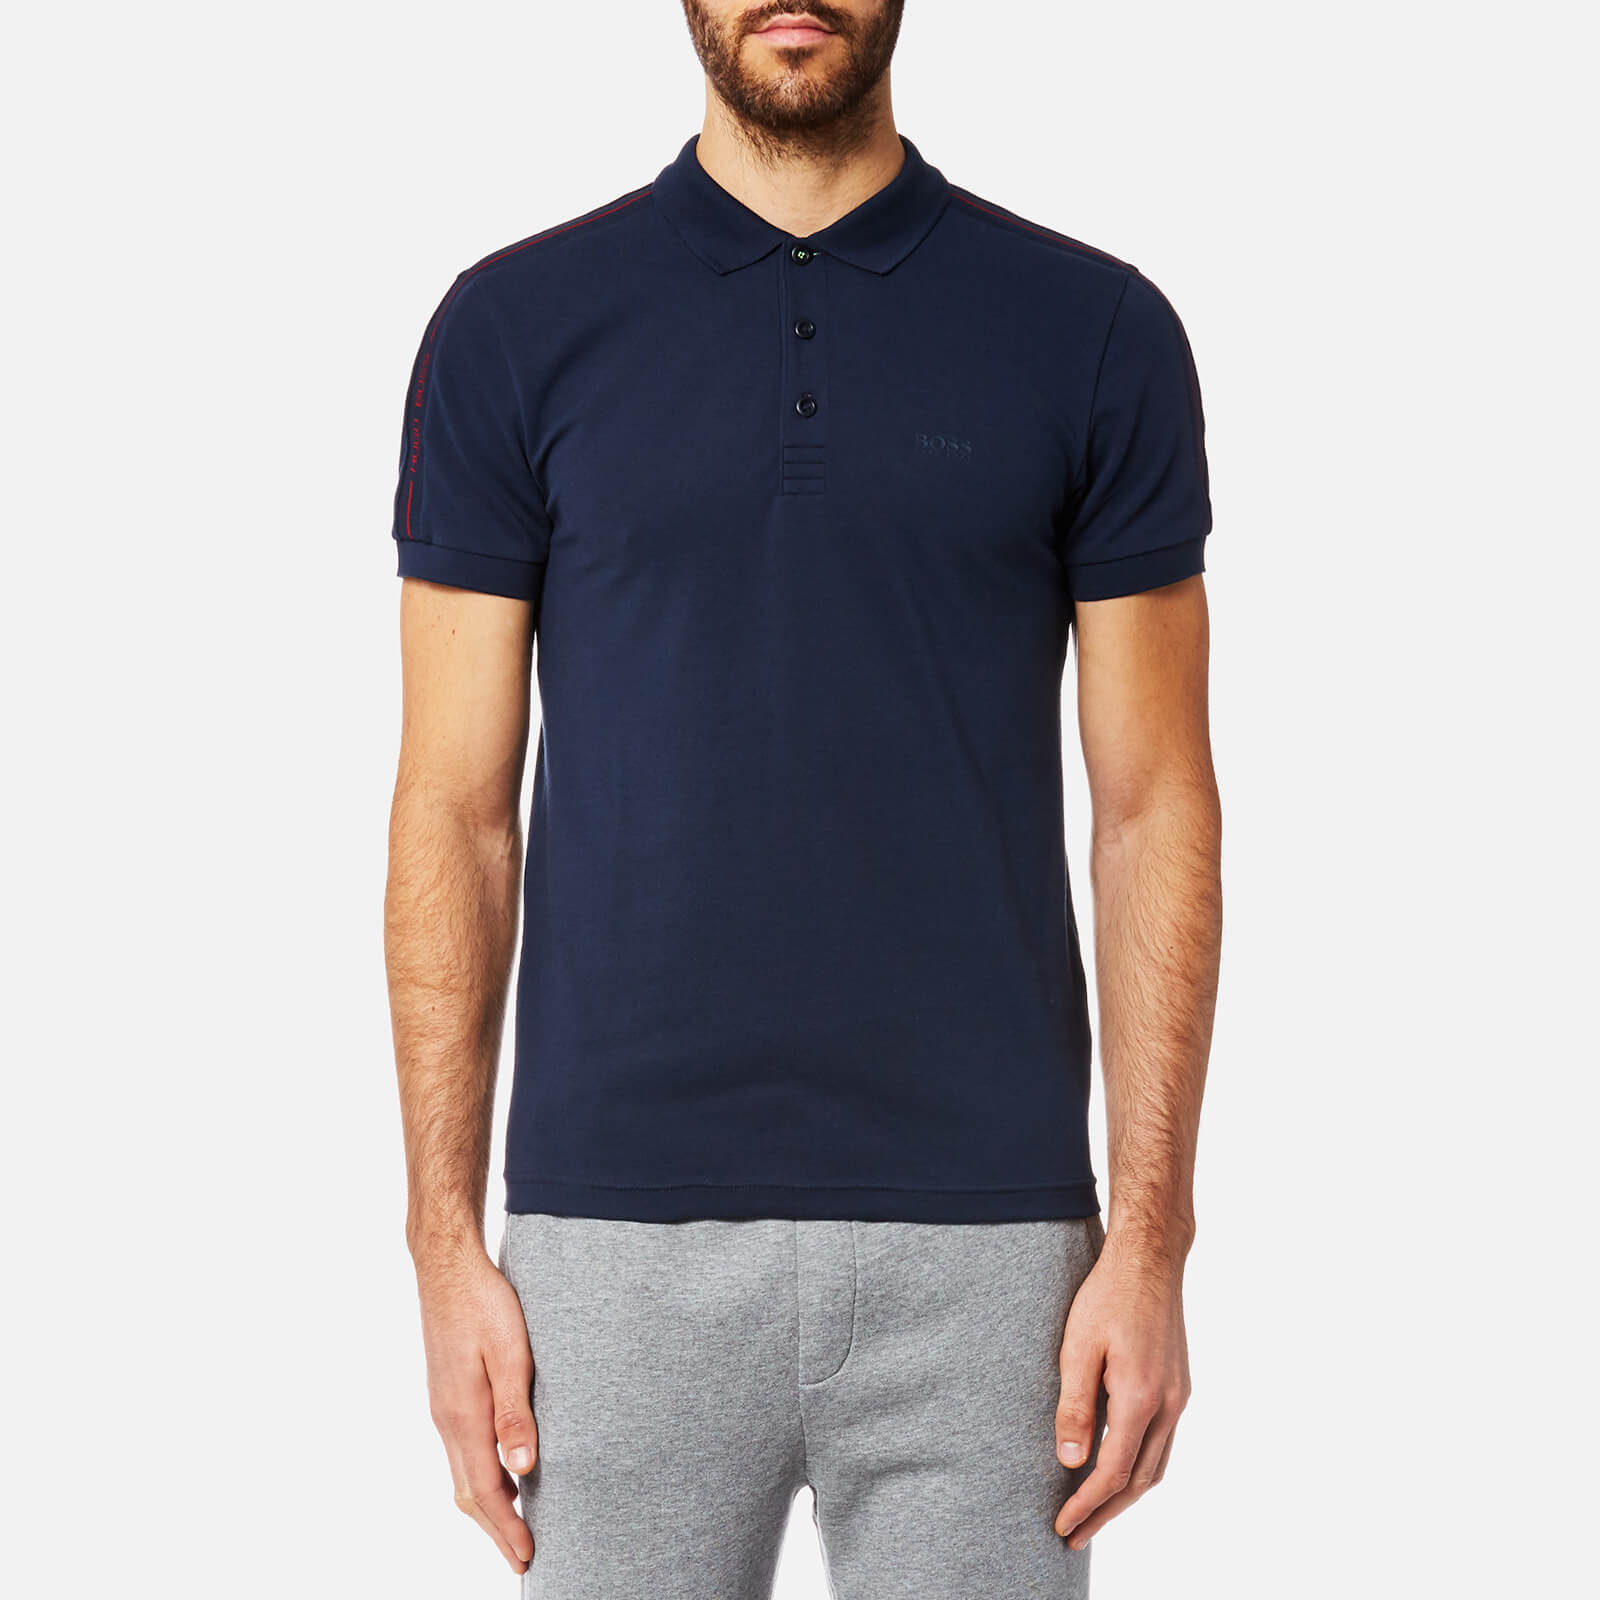 b9d8bbcb BOSS Green Men's Paule Sleeve Logo Polo Shirt - Navy - Free UK Delivery  over £50